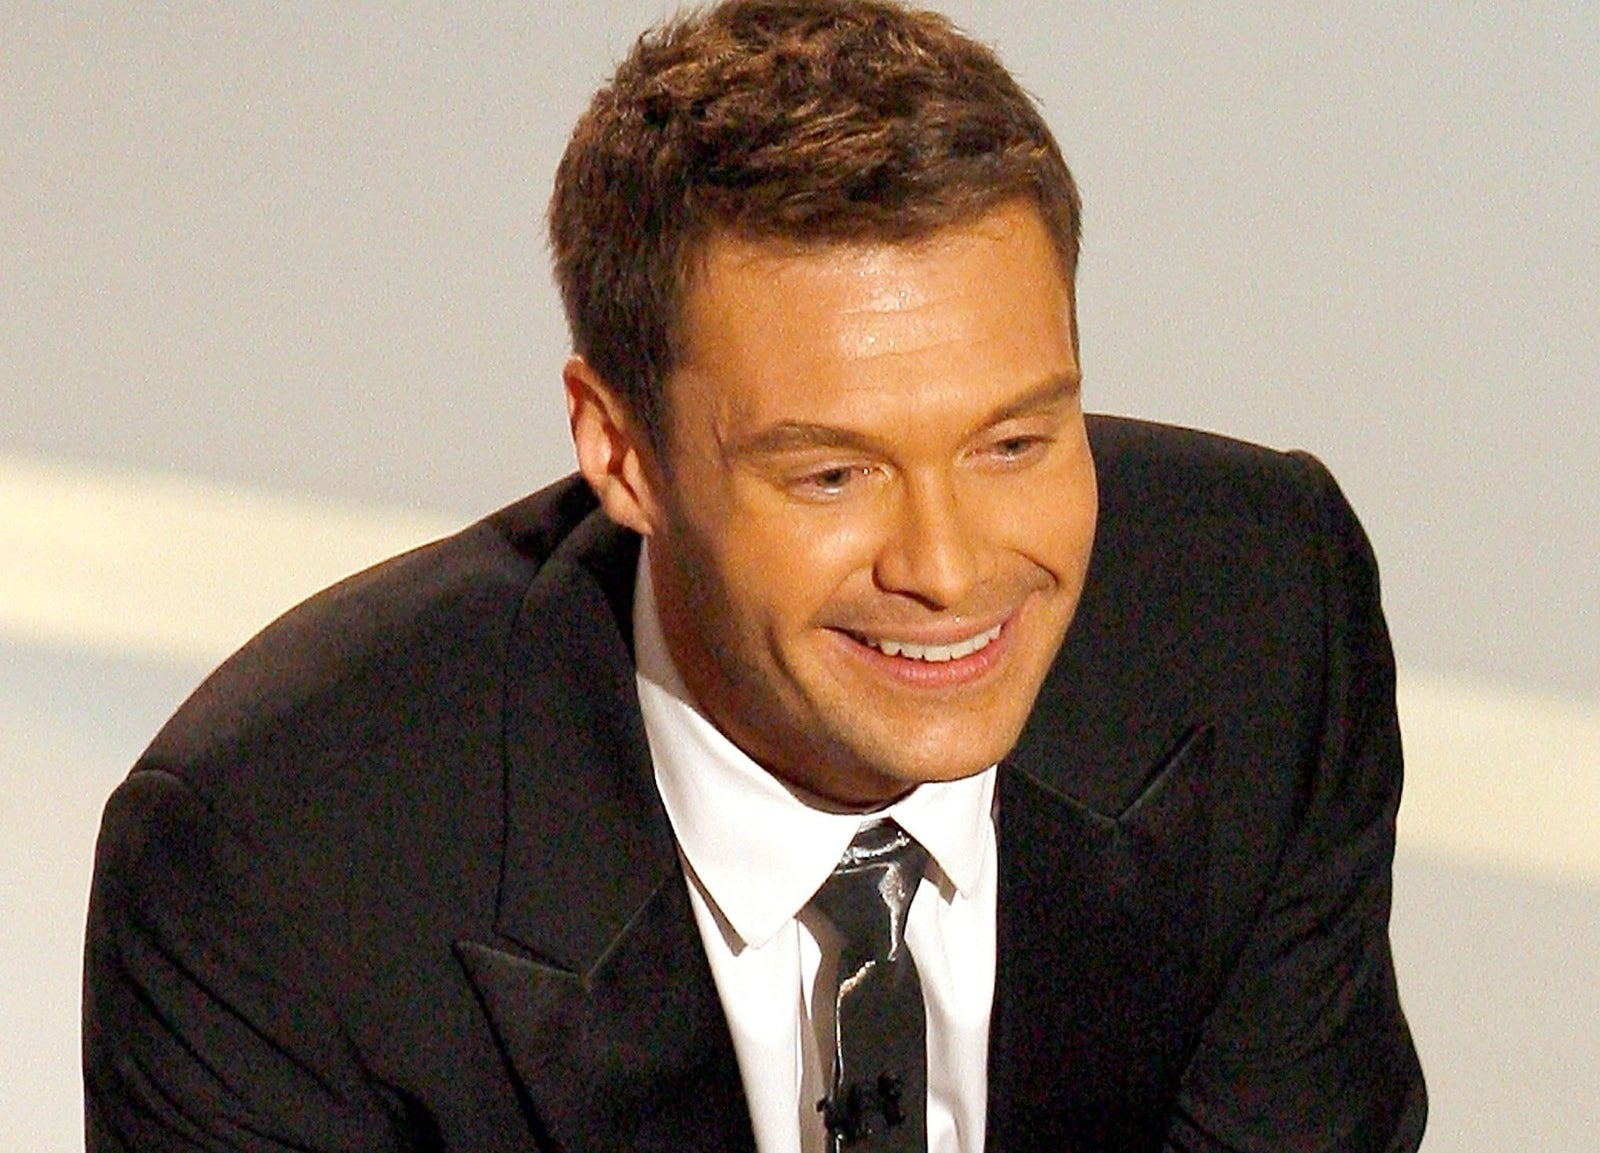 Ryan Seacrest hosted the Emmys in 2007.